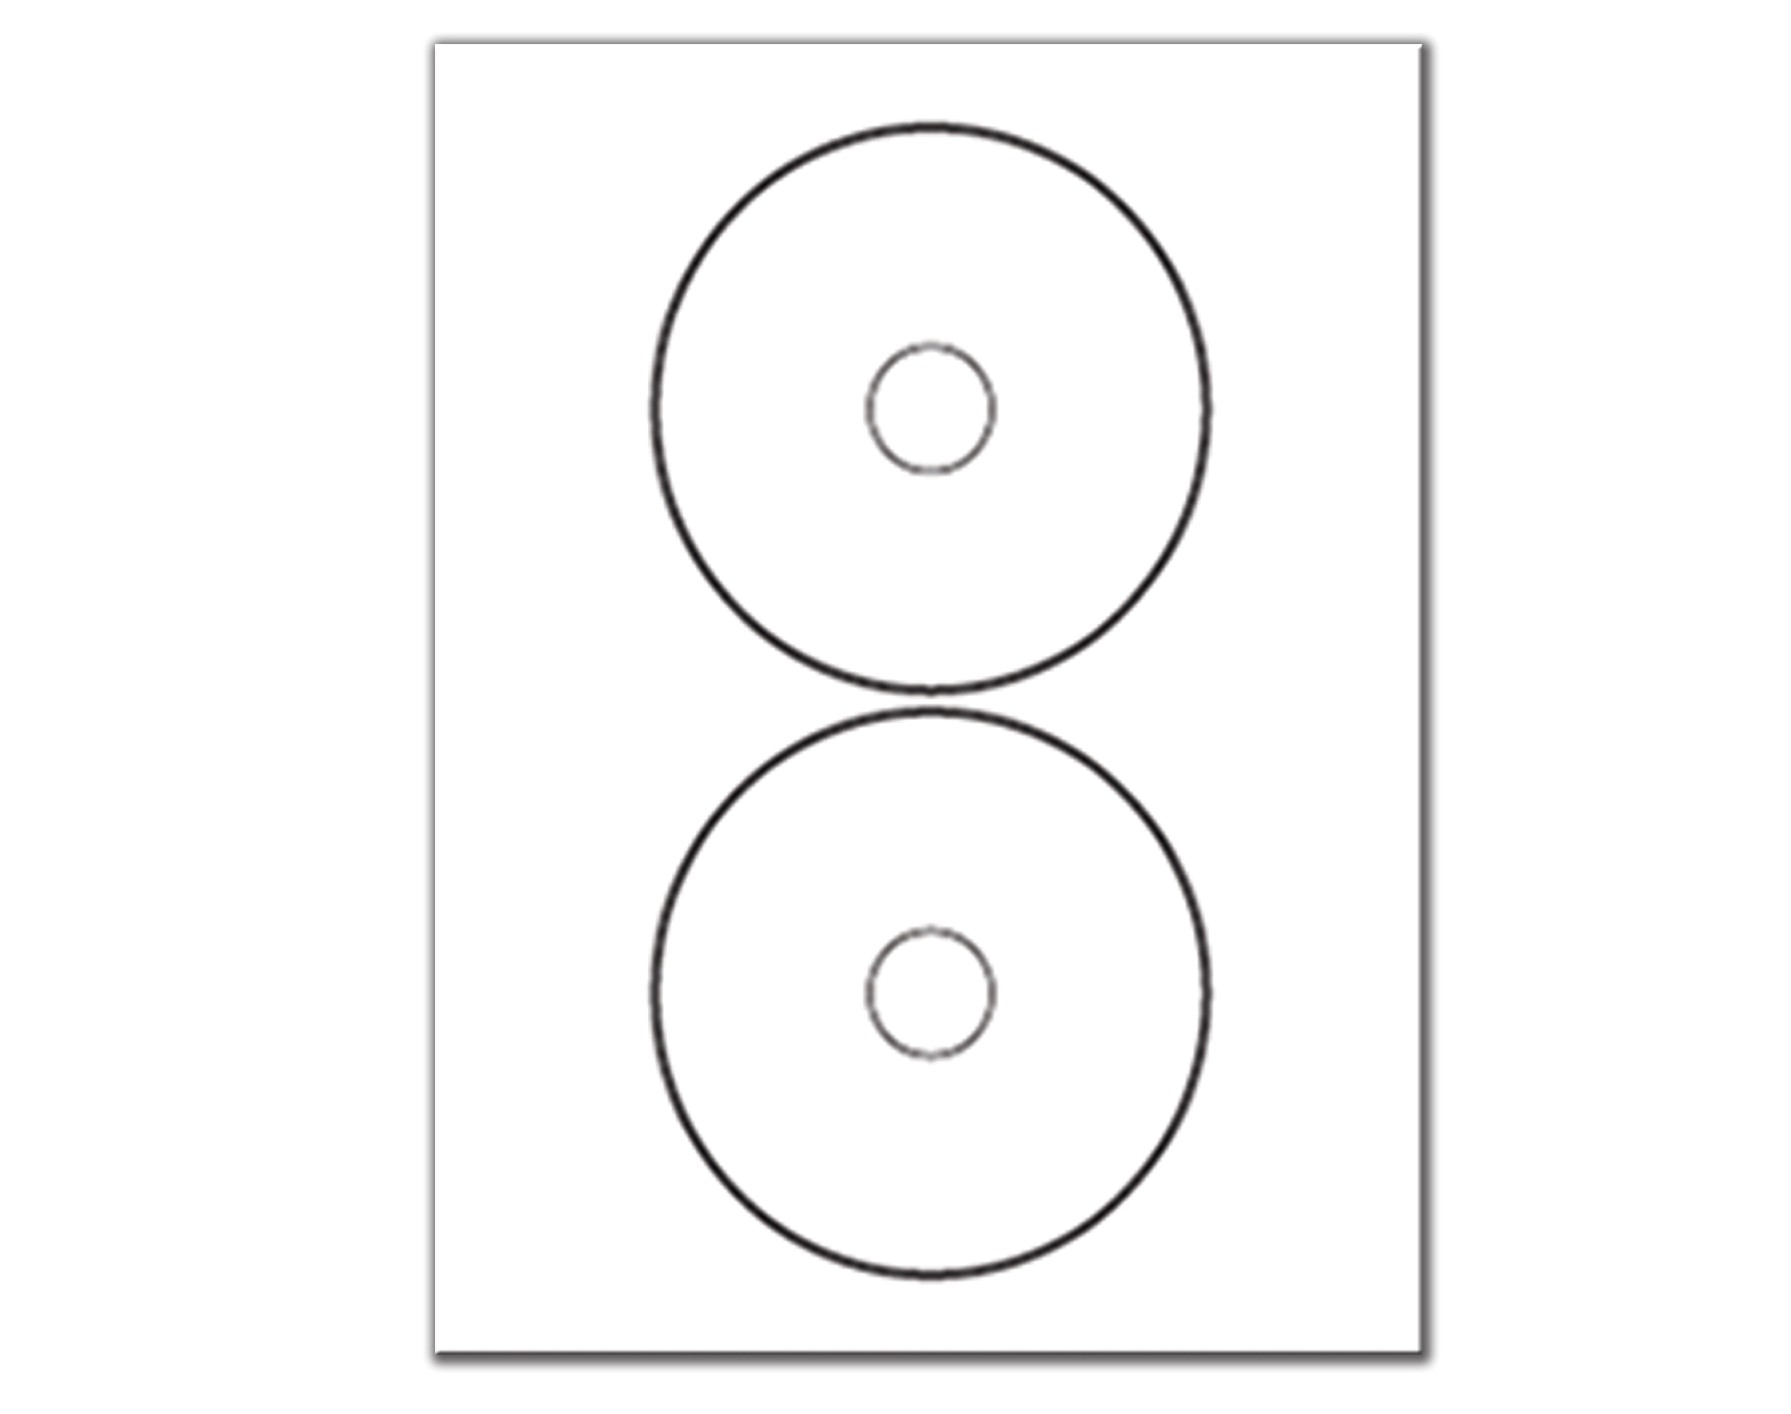 Avery Cd Dvd Label Templates 2 Up Cd Dvd Labels Mcd625w 1 Package Cd Dvd Labels